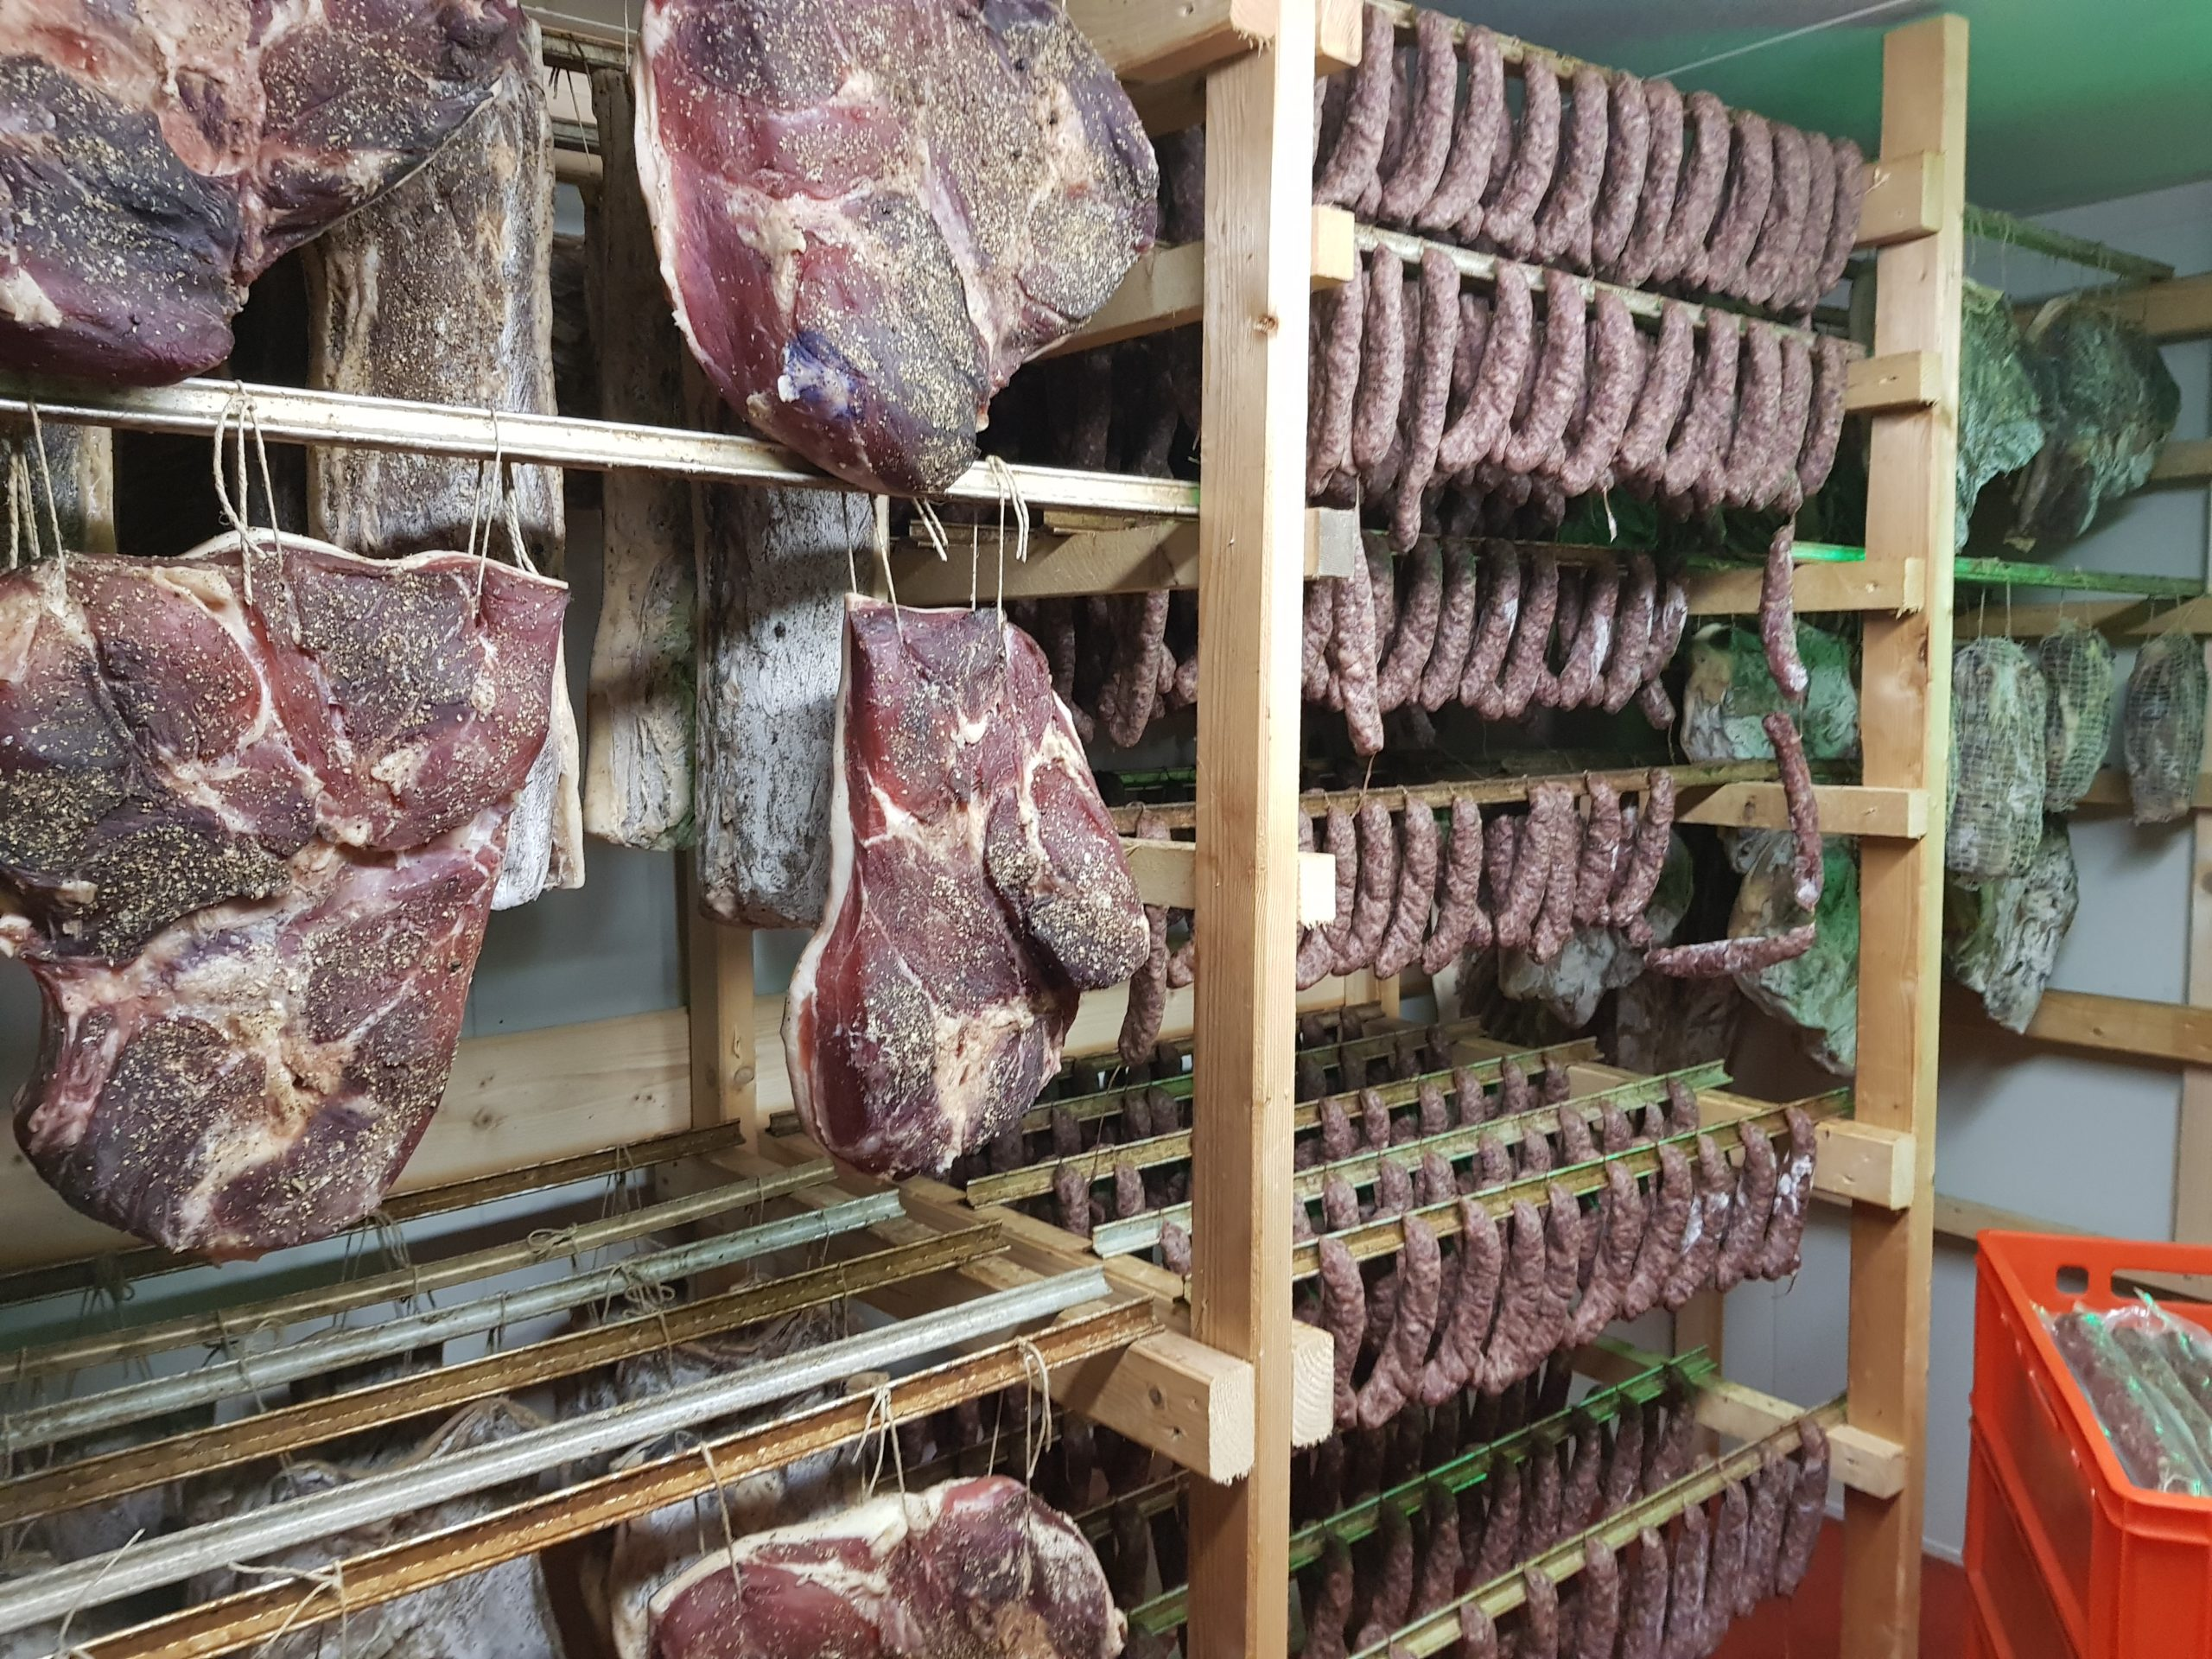 small scale meat production in Austria